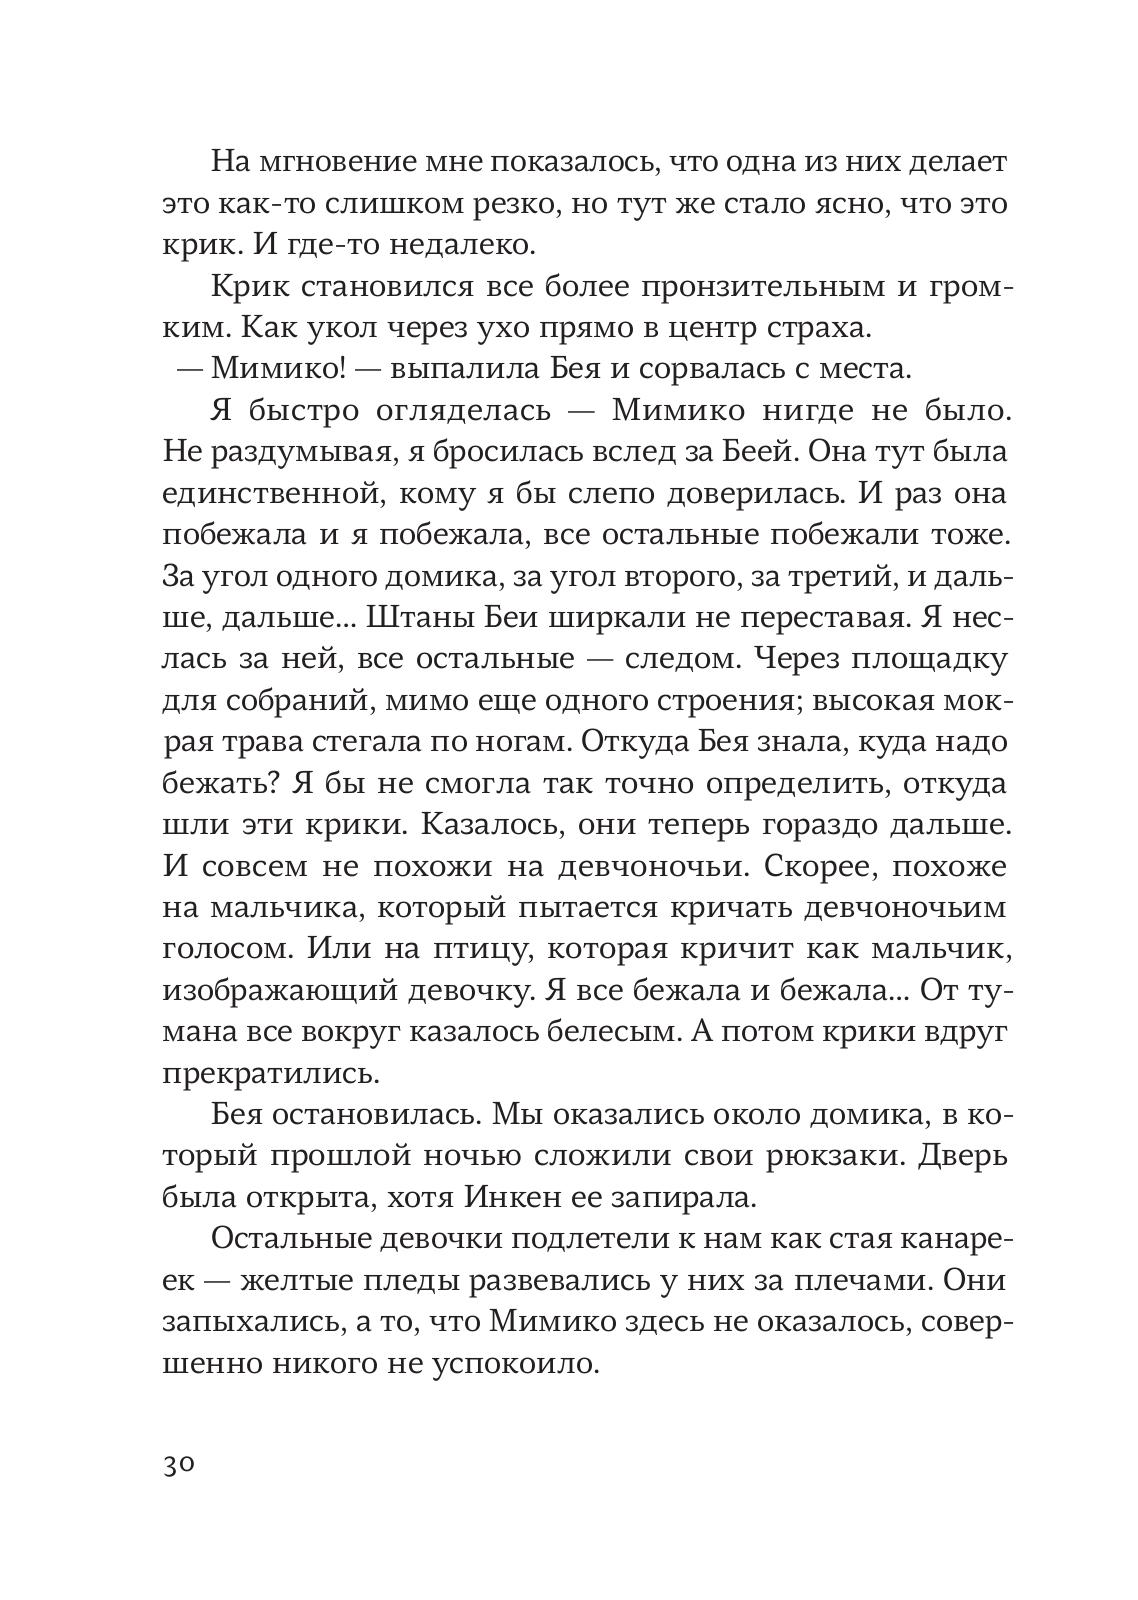 Page 28